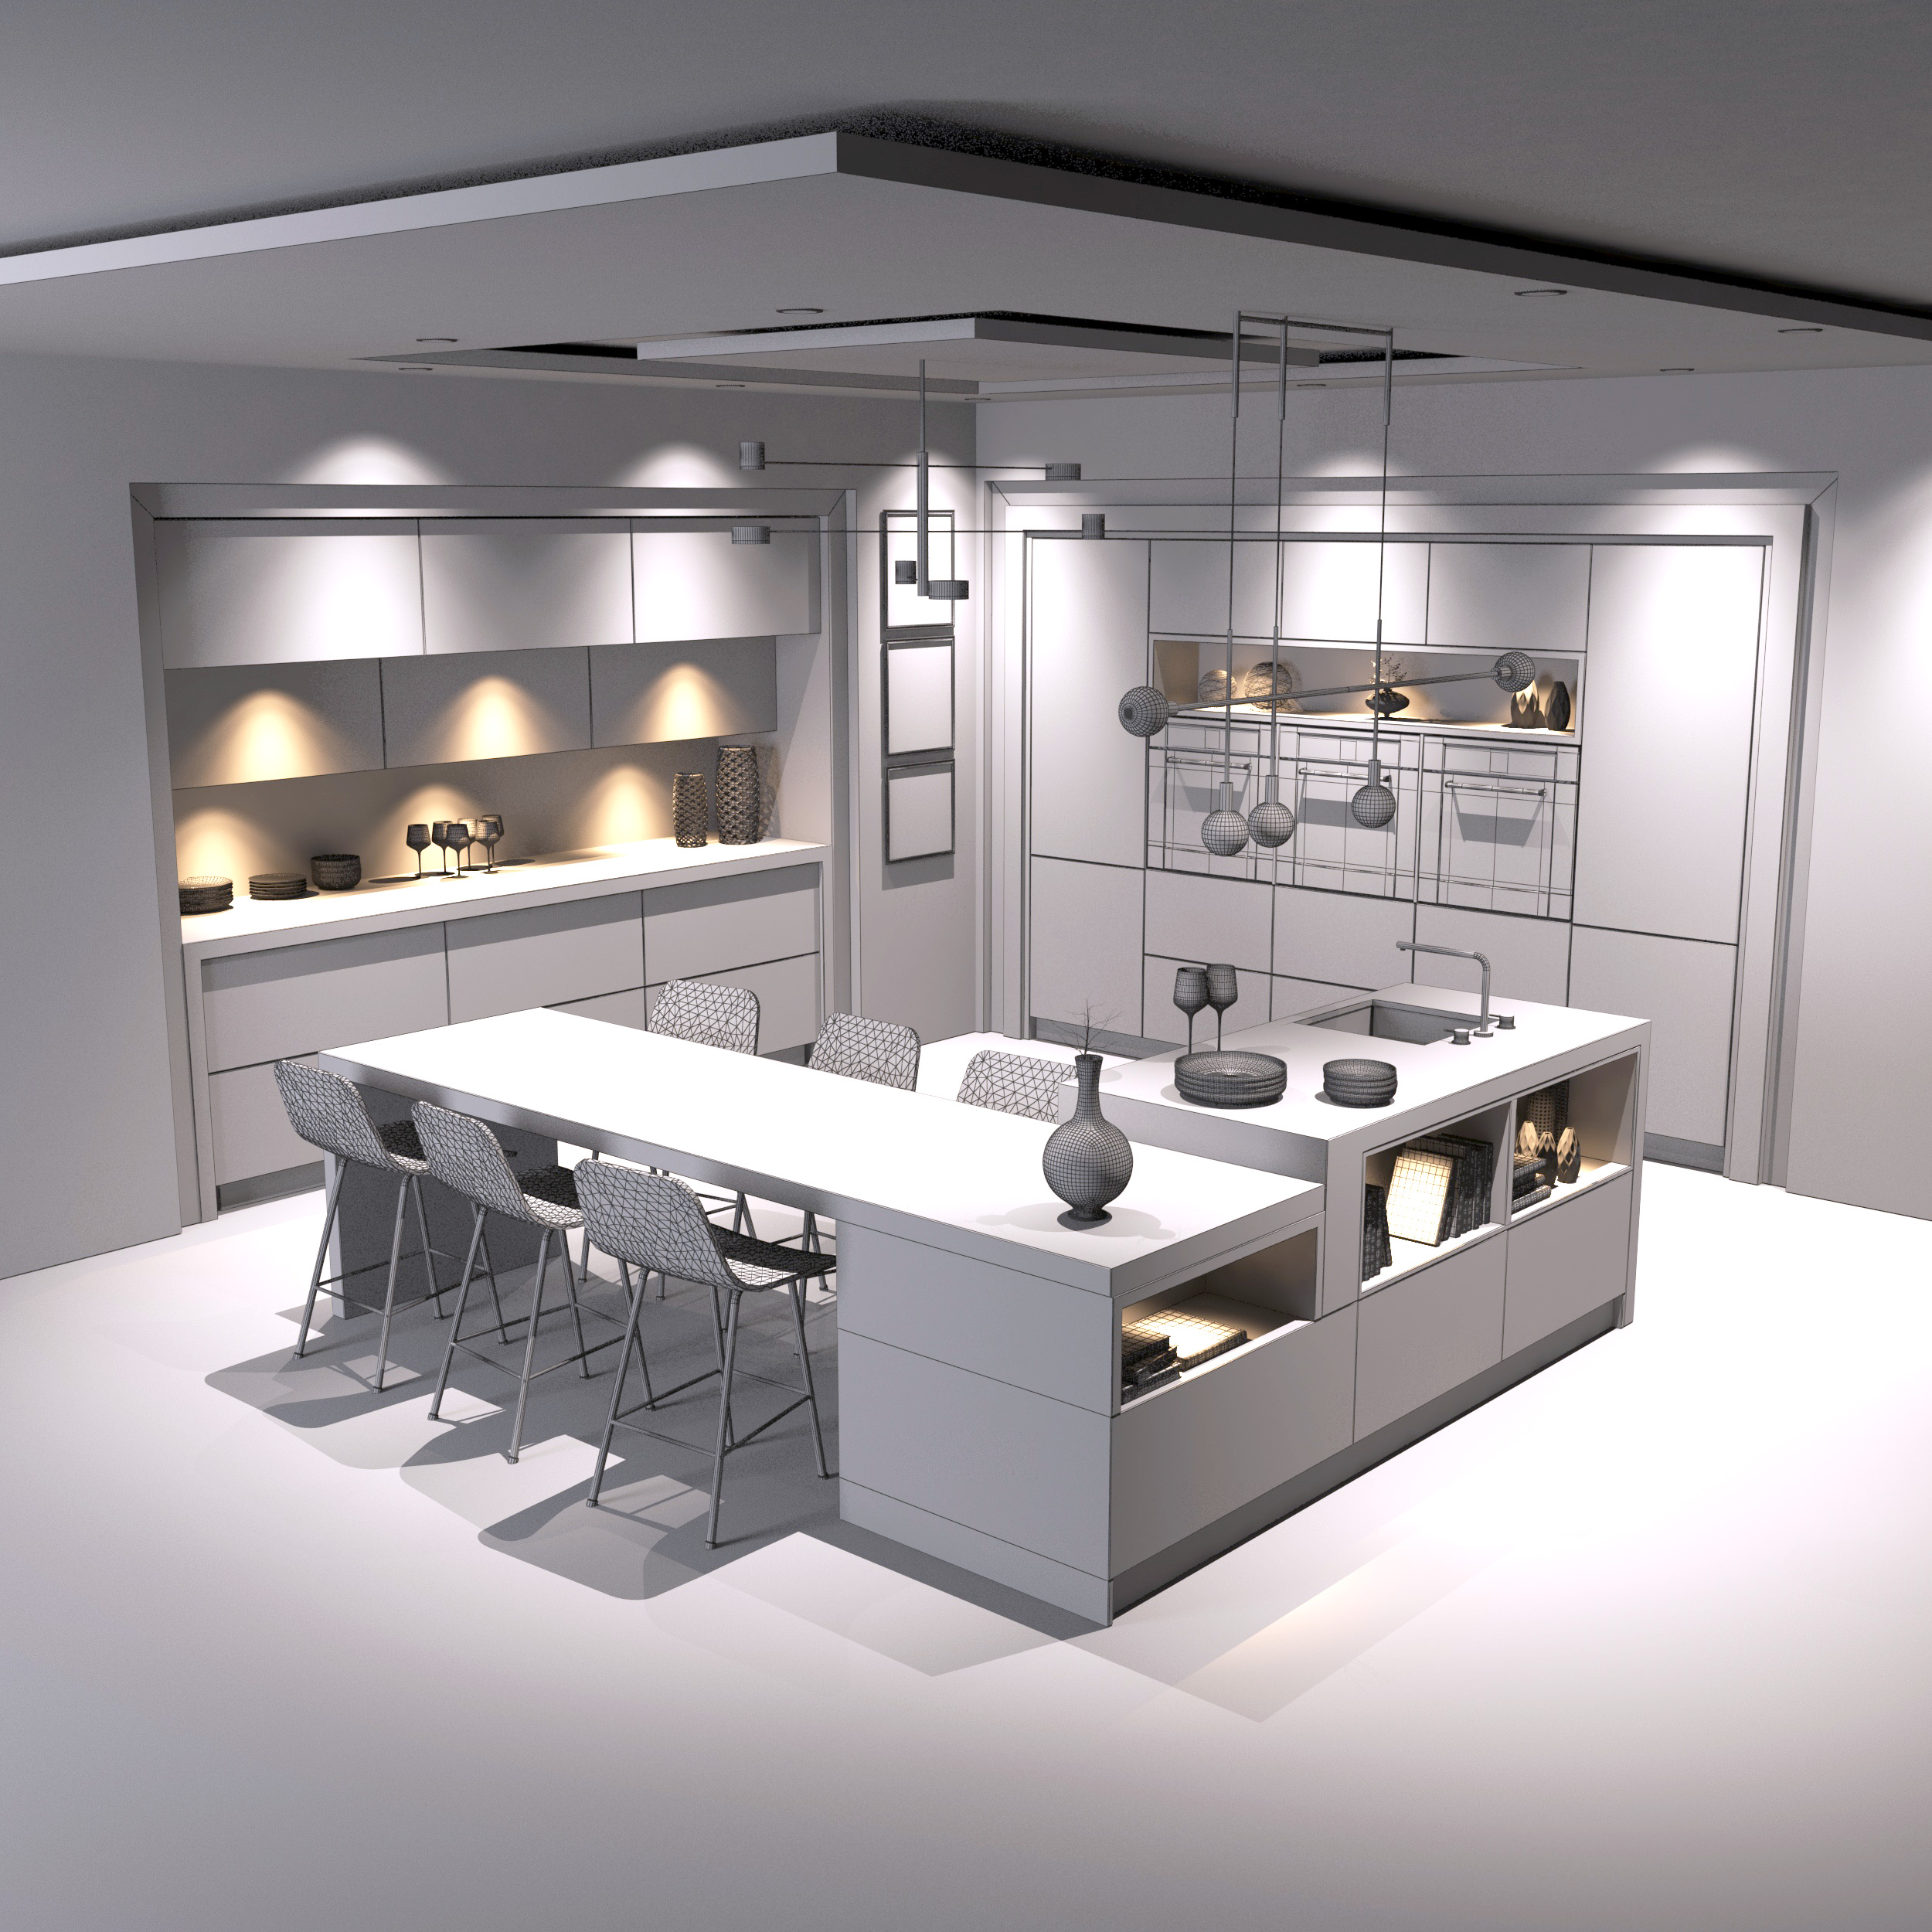 Kitchen Design 3d Model: Modern Kitchen 3D Model